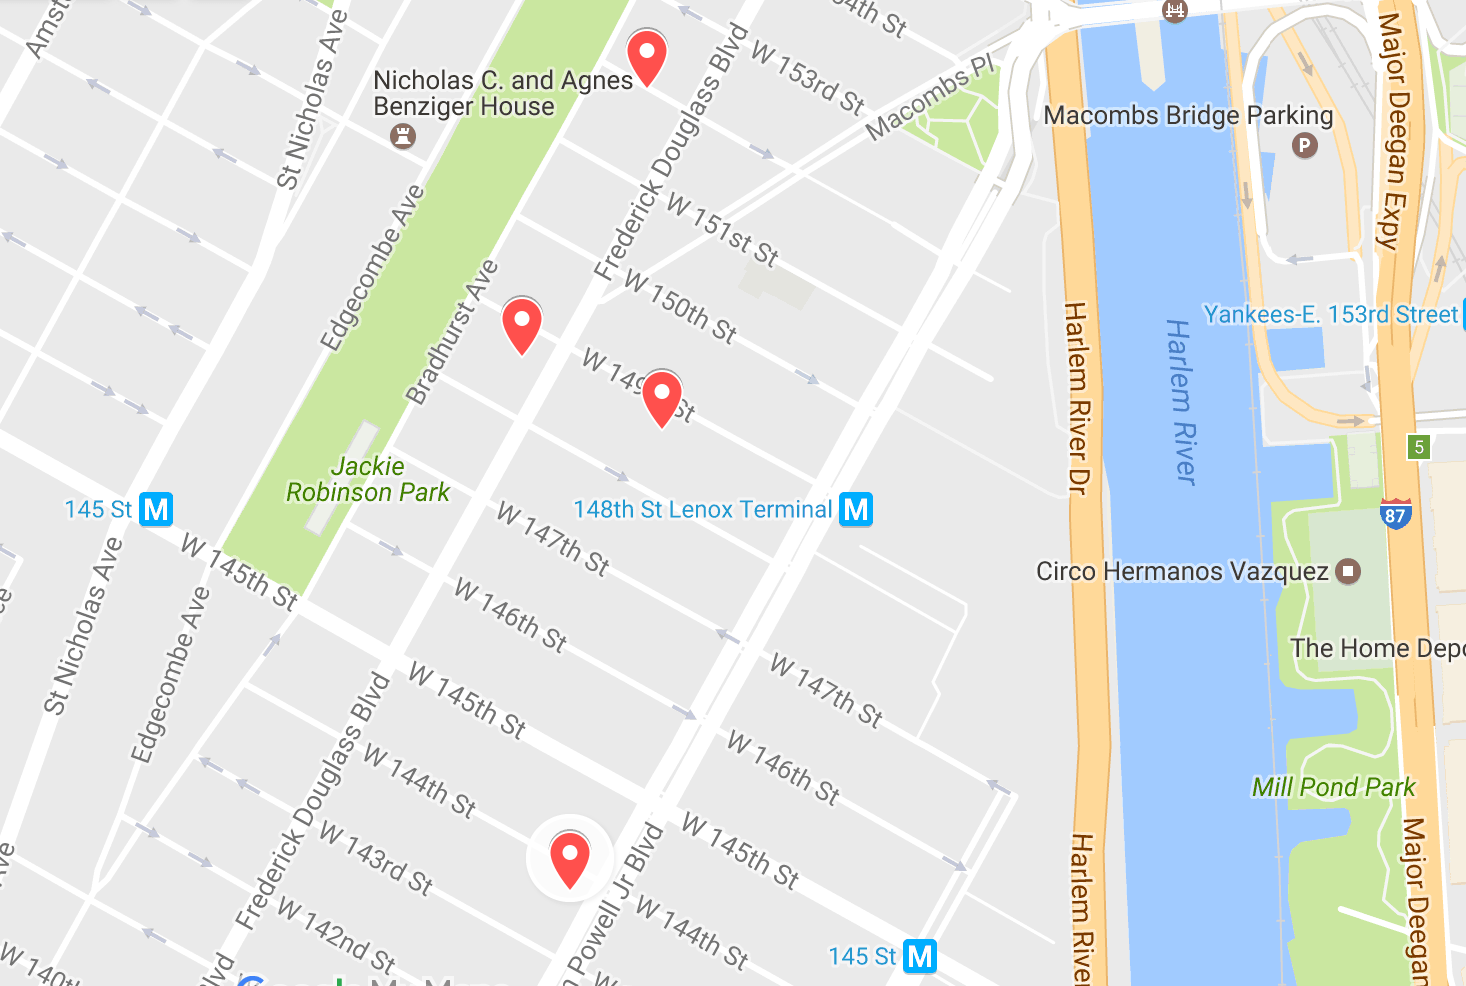 central-harlem-lottery-january-2017-map